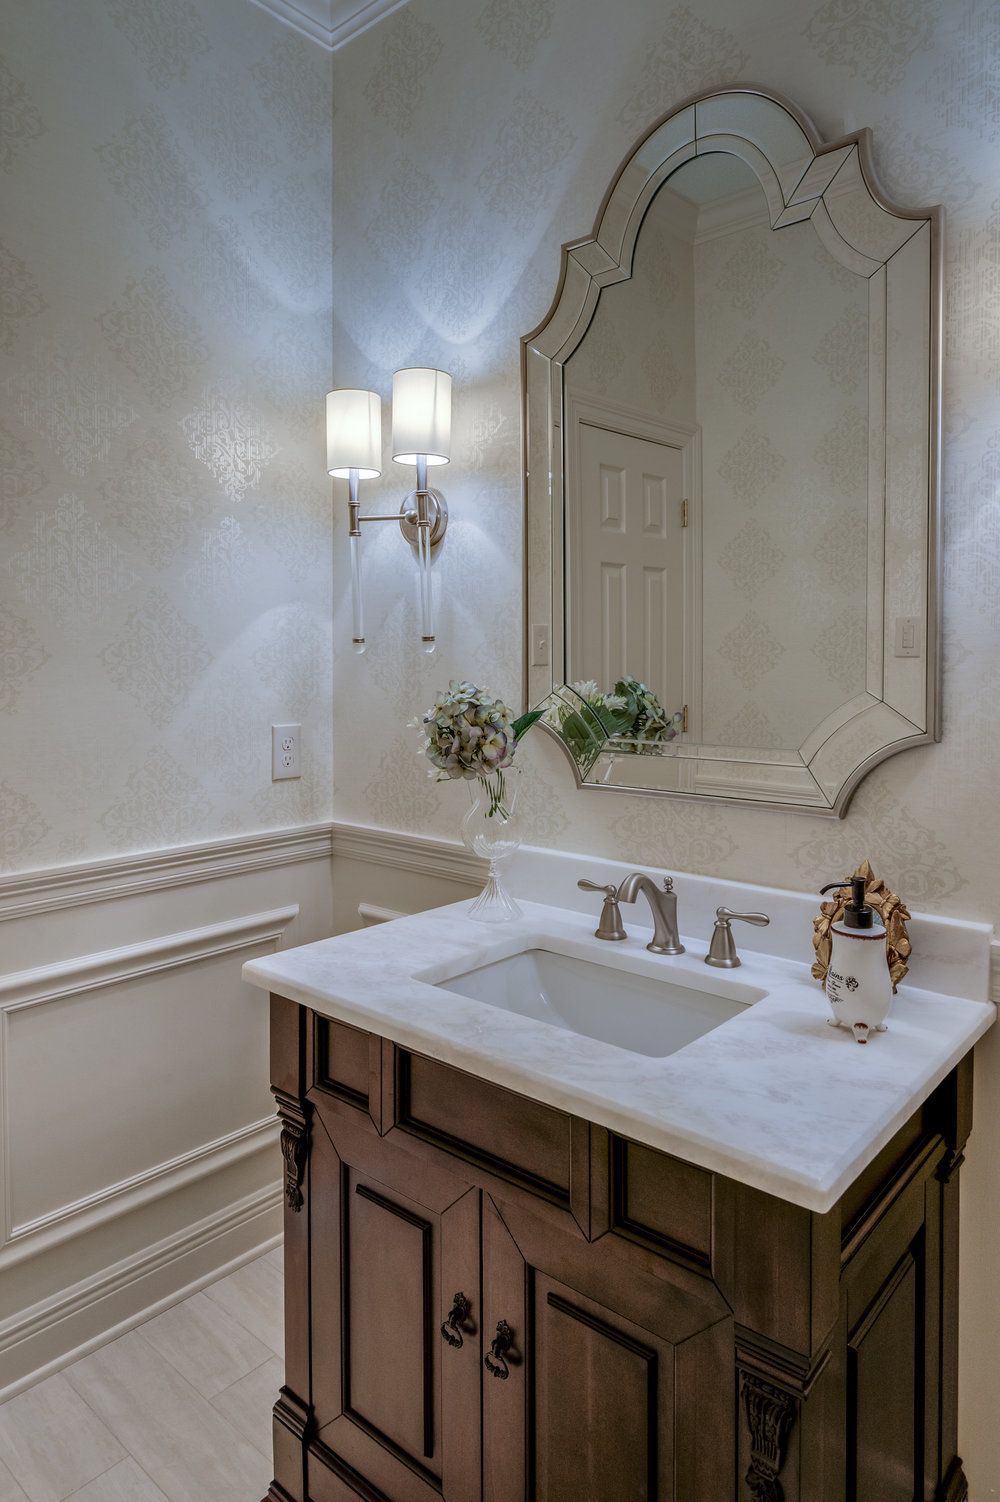 KHB Interiors powder room new orleans interior designer old metairie lakeview interior decorator.jpg